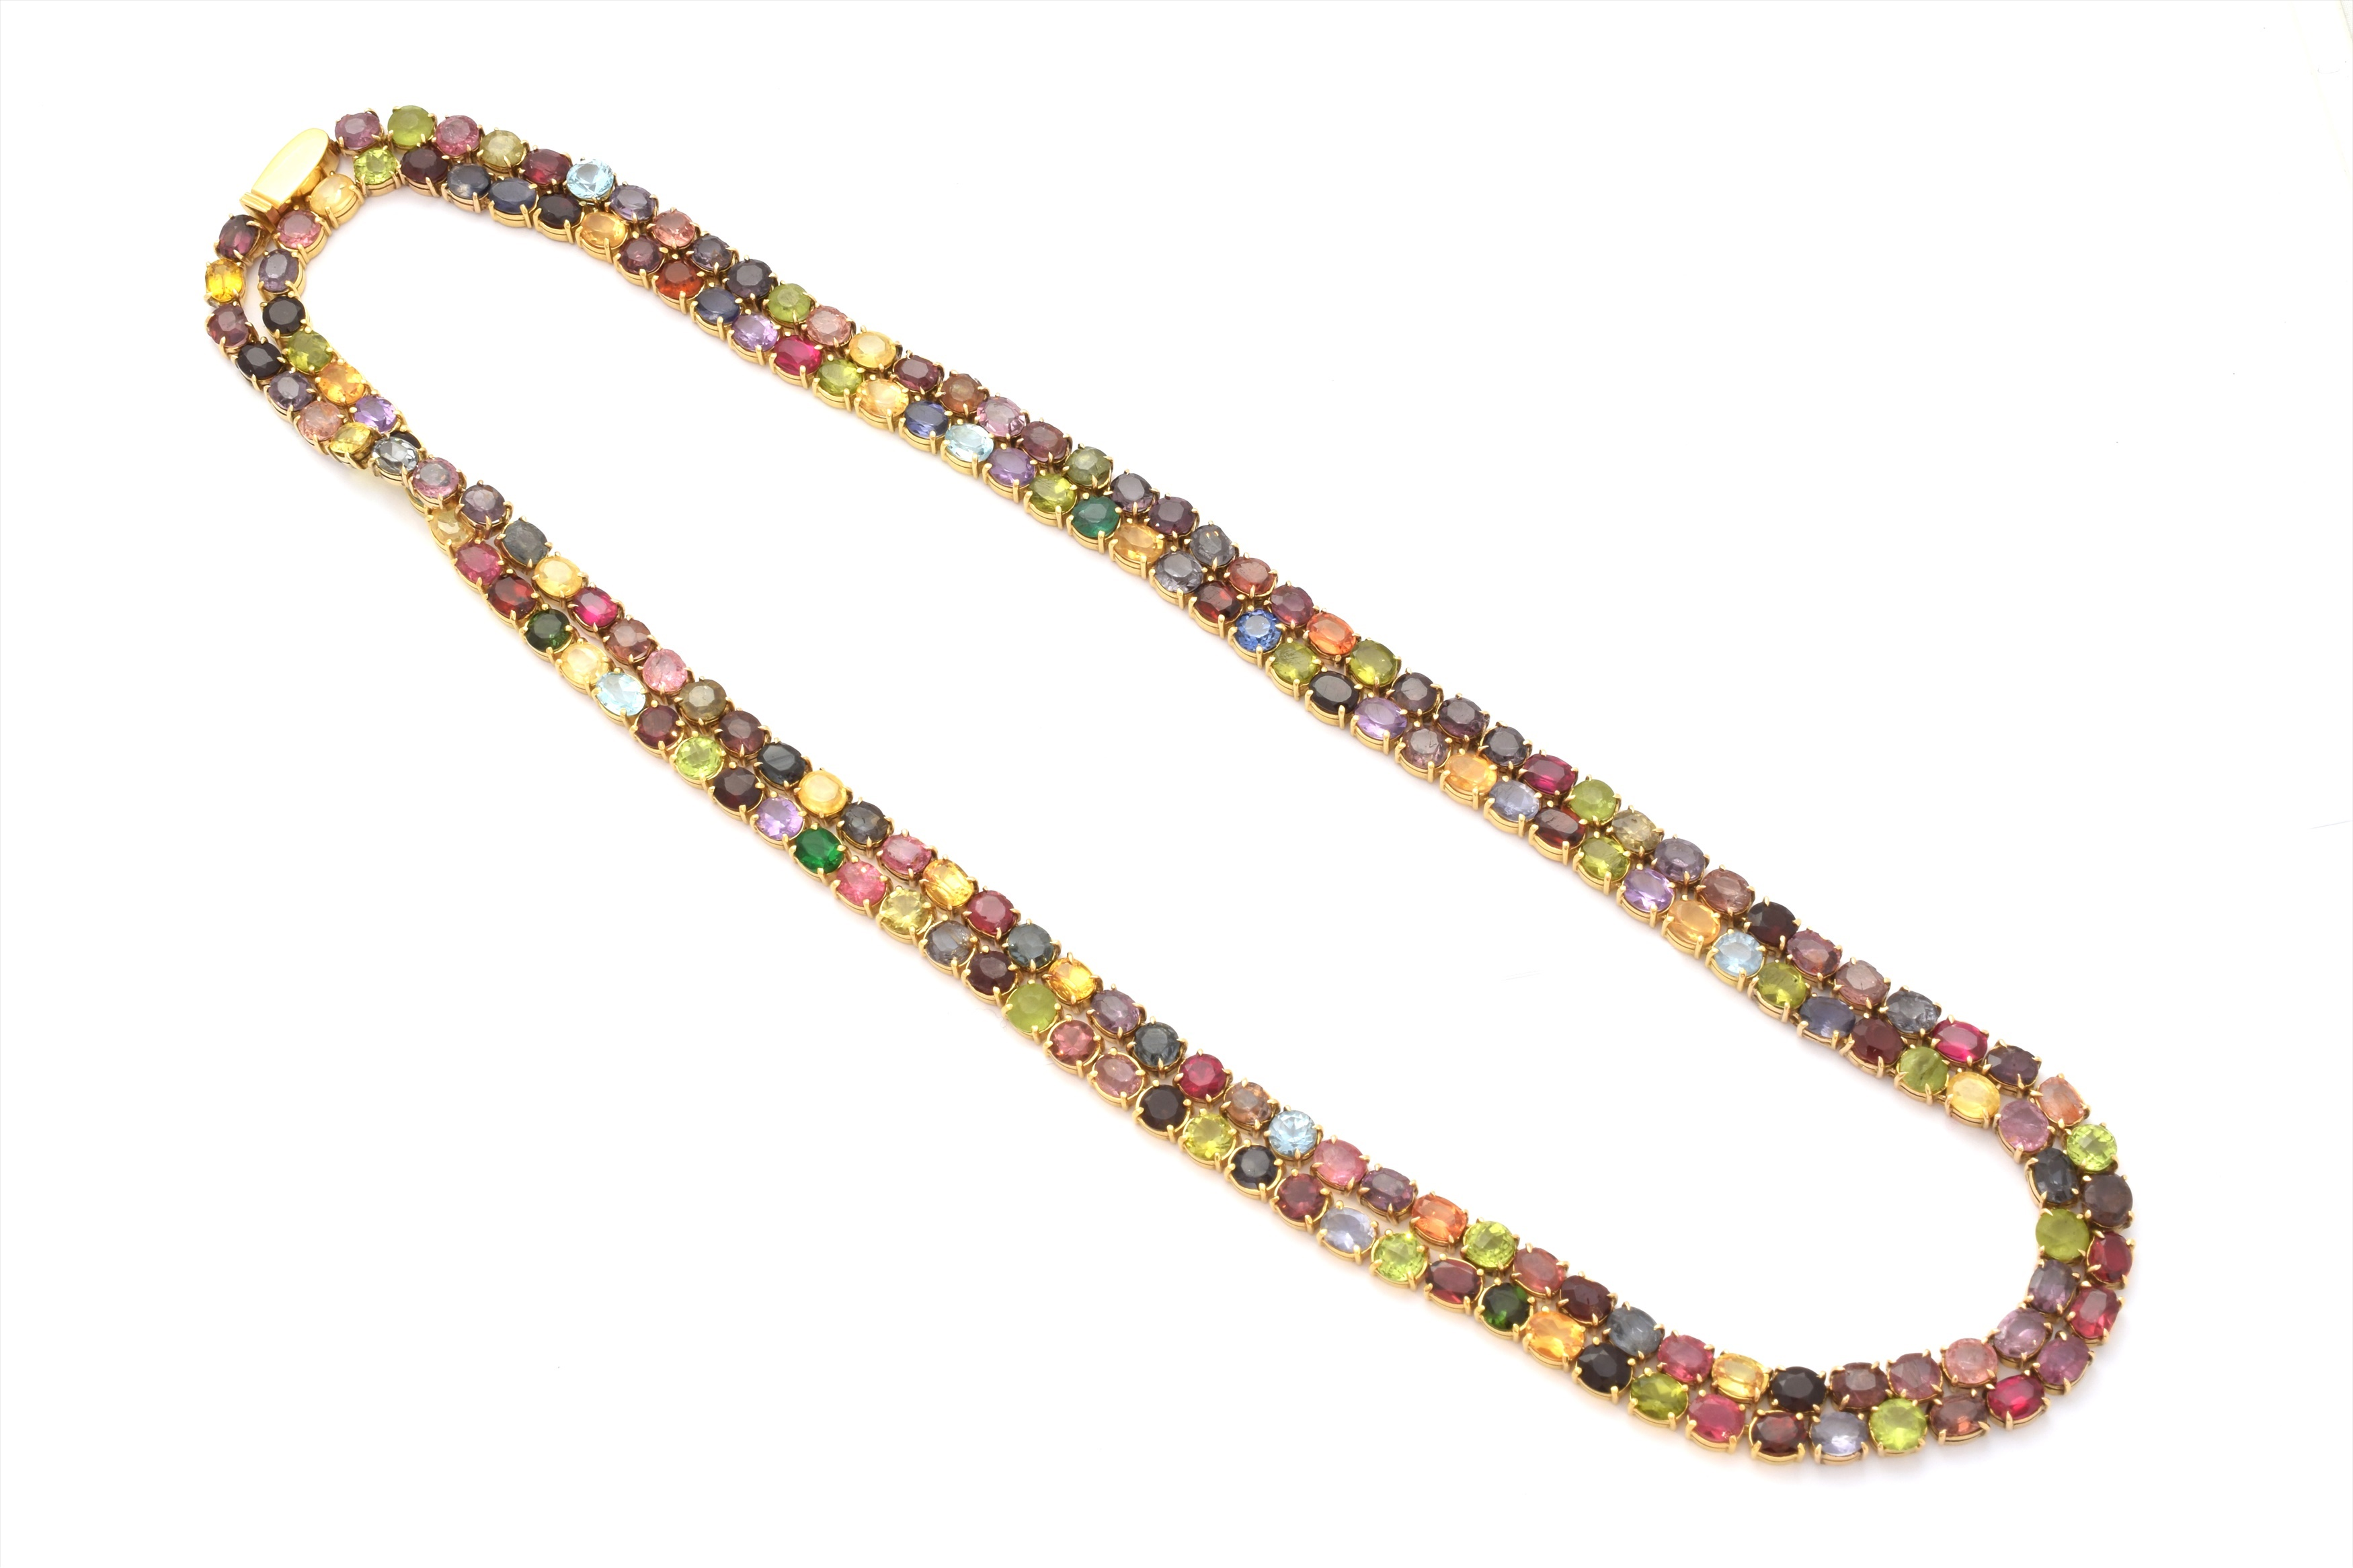 A multi gem rivière necklace, designed as an oval and circular shape vari gem line, including ruby, peridot, spinel, garnets, amethyst, iolite, citrine, sapphire, topaz and other gemstones, with a polished push-piece clasp, stamped 750, length 116cm, gross weight 92.4g.